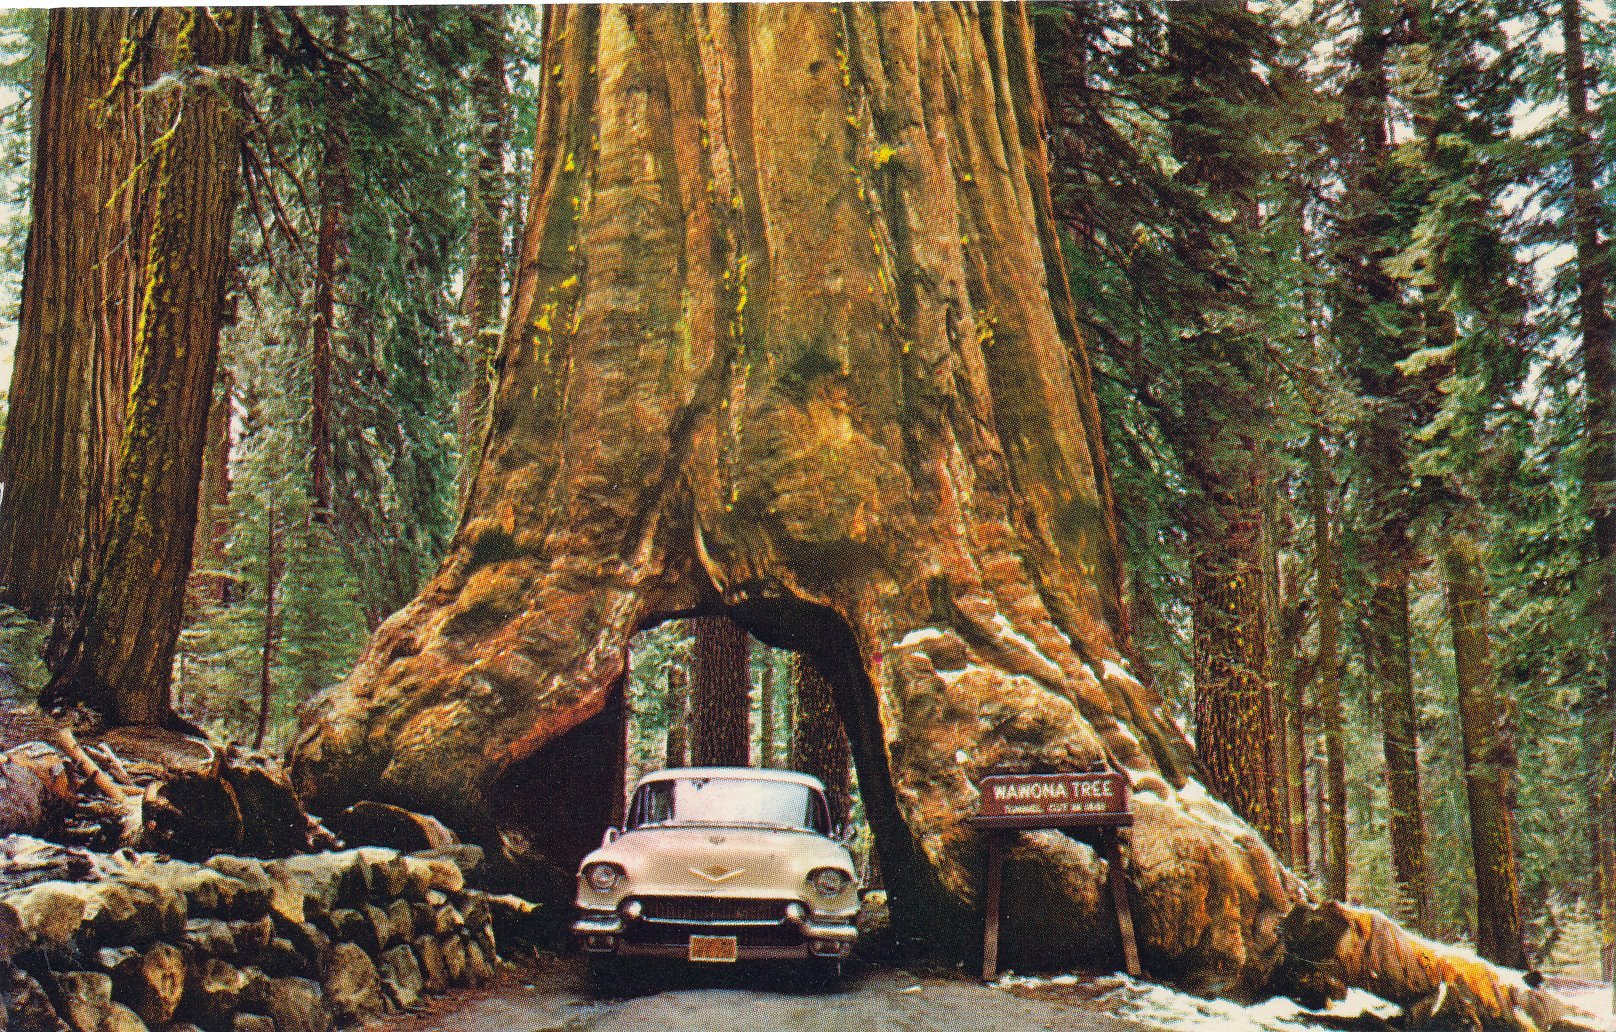 A 1950s postcard image of the now-fallen Wawona tree in Yosemite National Park.